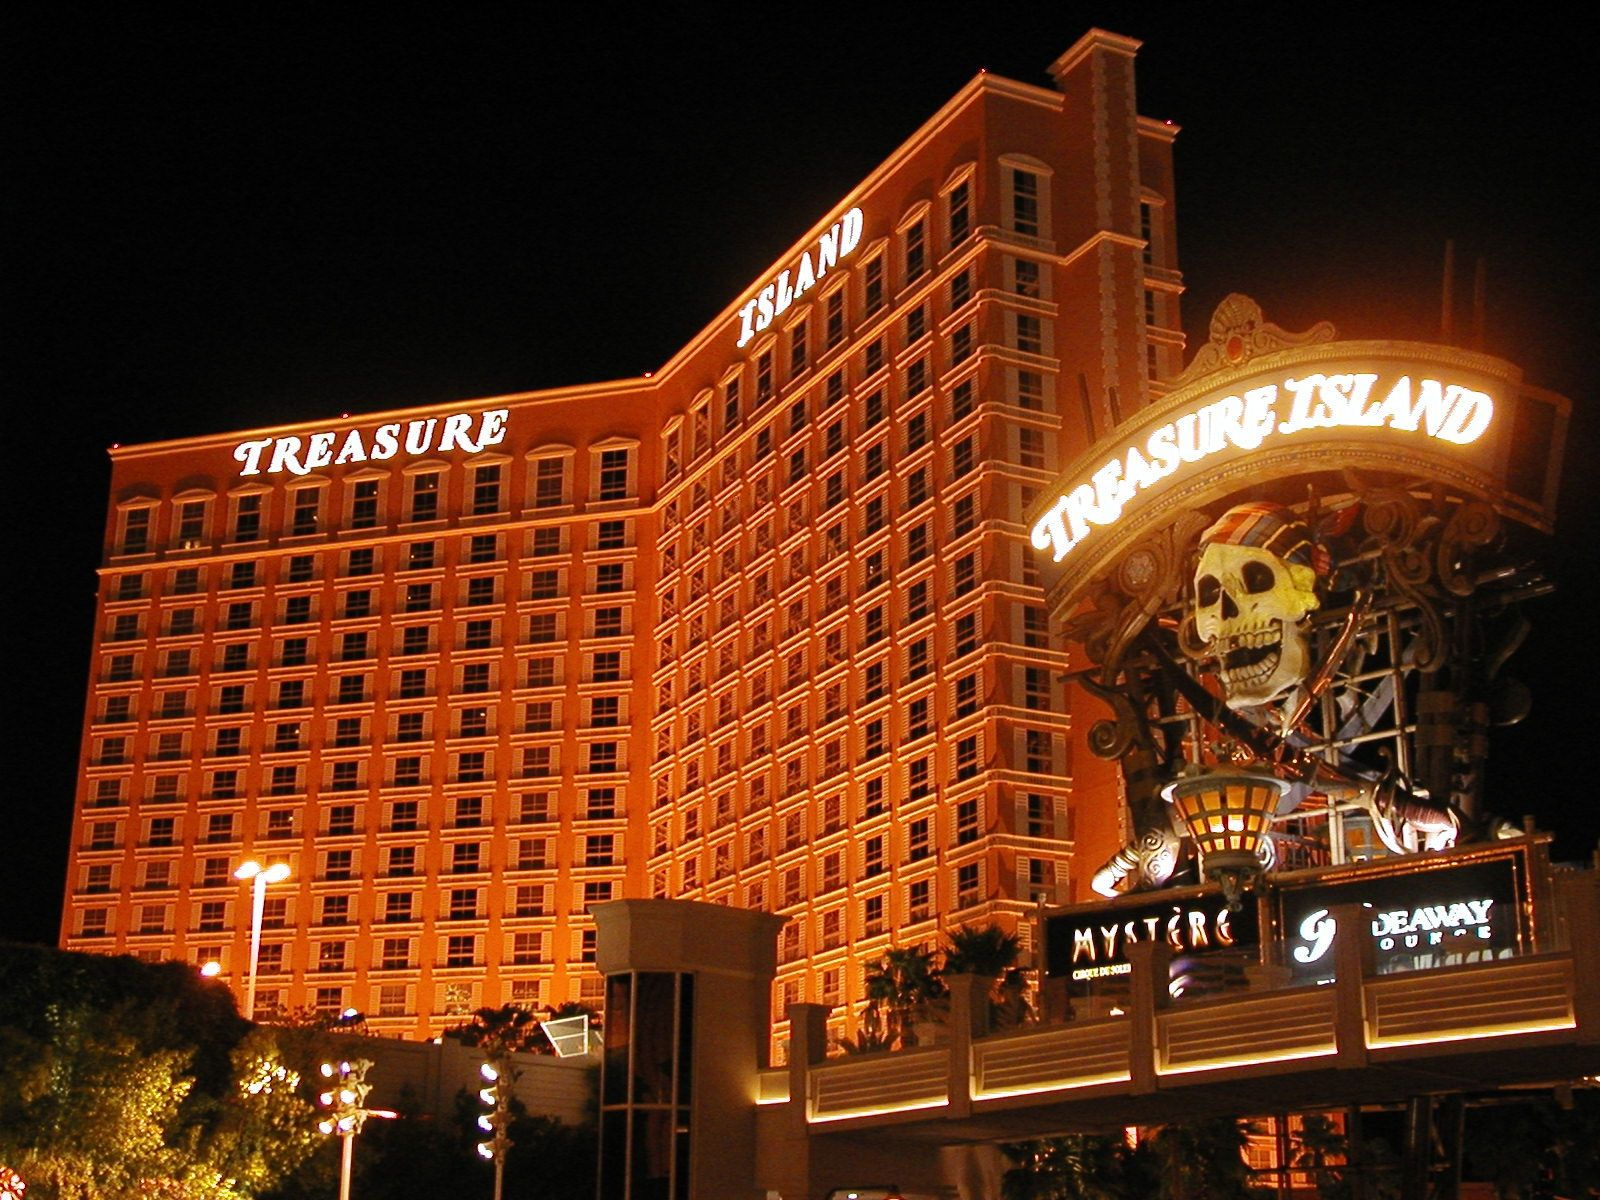 Treasure island casino las vegas mukleshoot casino galaxy lounge